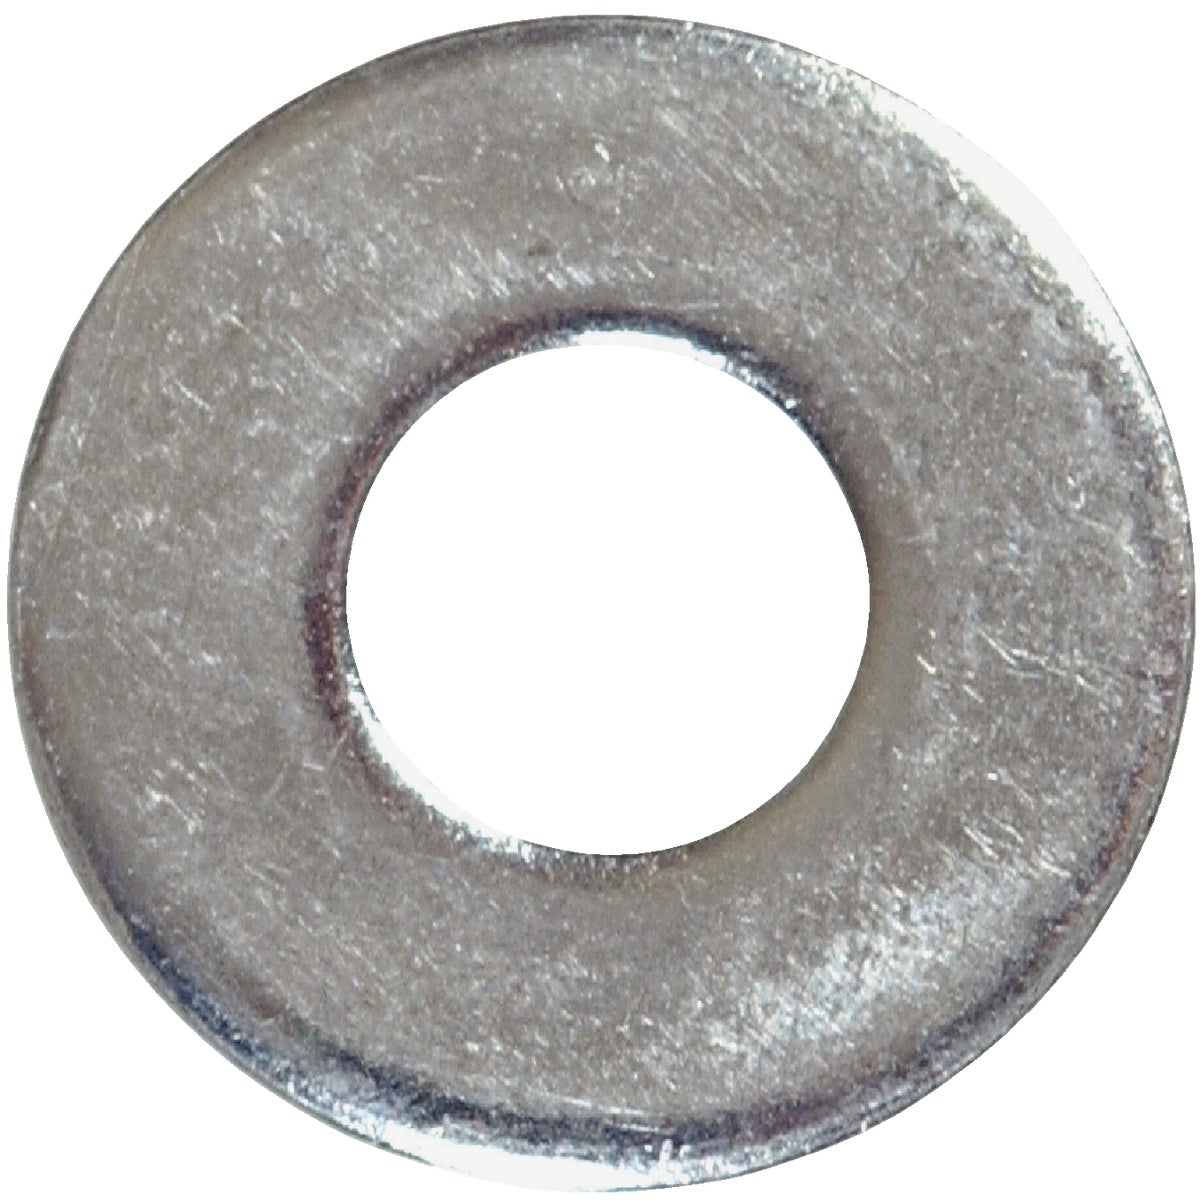 100PC #8 SAE FLAT WASHER - 280052 by Hillman Fastener